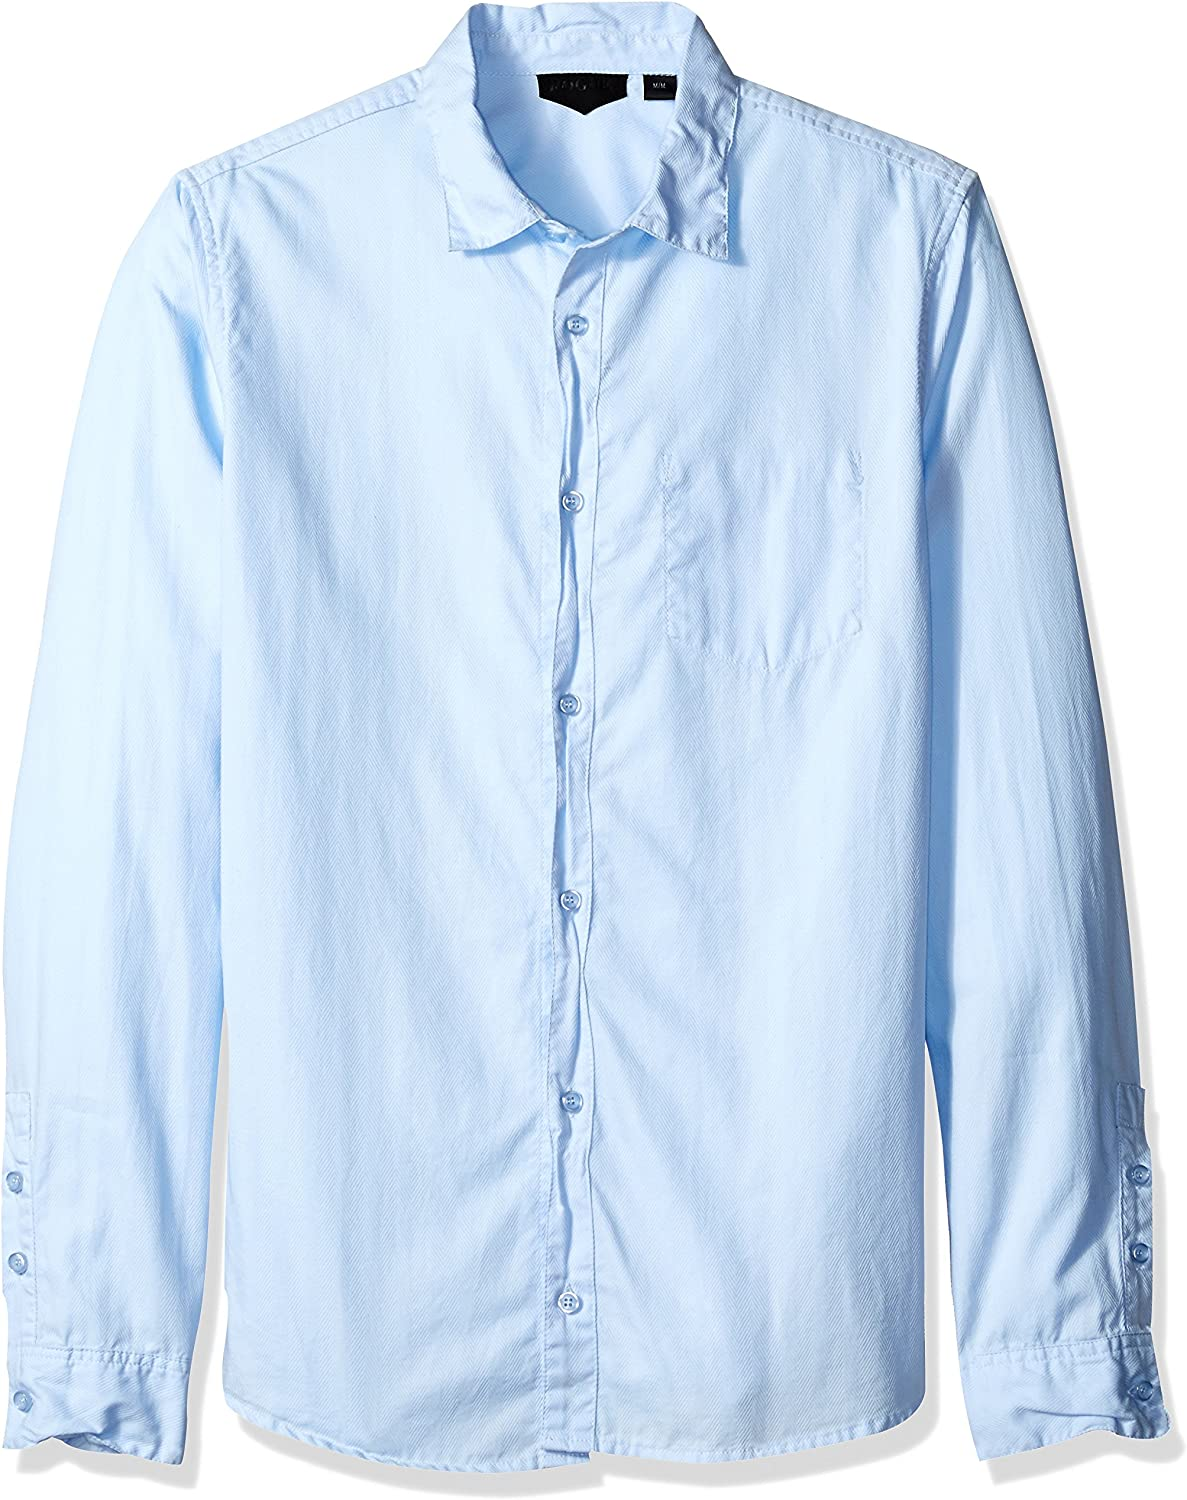 ROGUE Men's Button Over item handling ☆ Up Shirt Woven Solid Sales